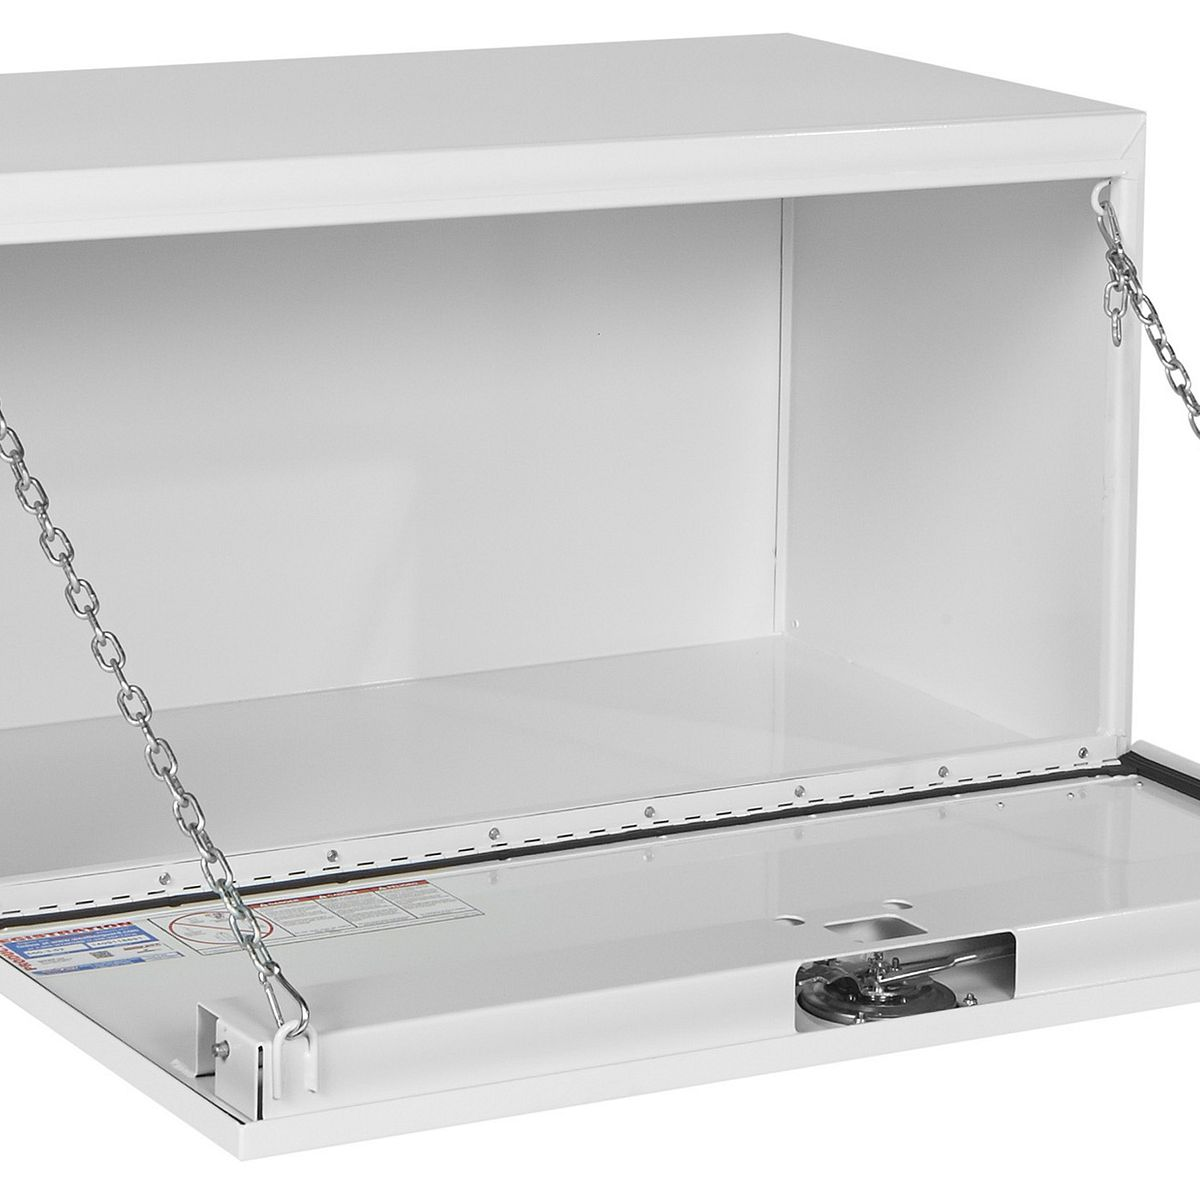 530502 Underbed Tool Box, Steel Weather Guard